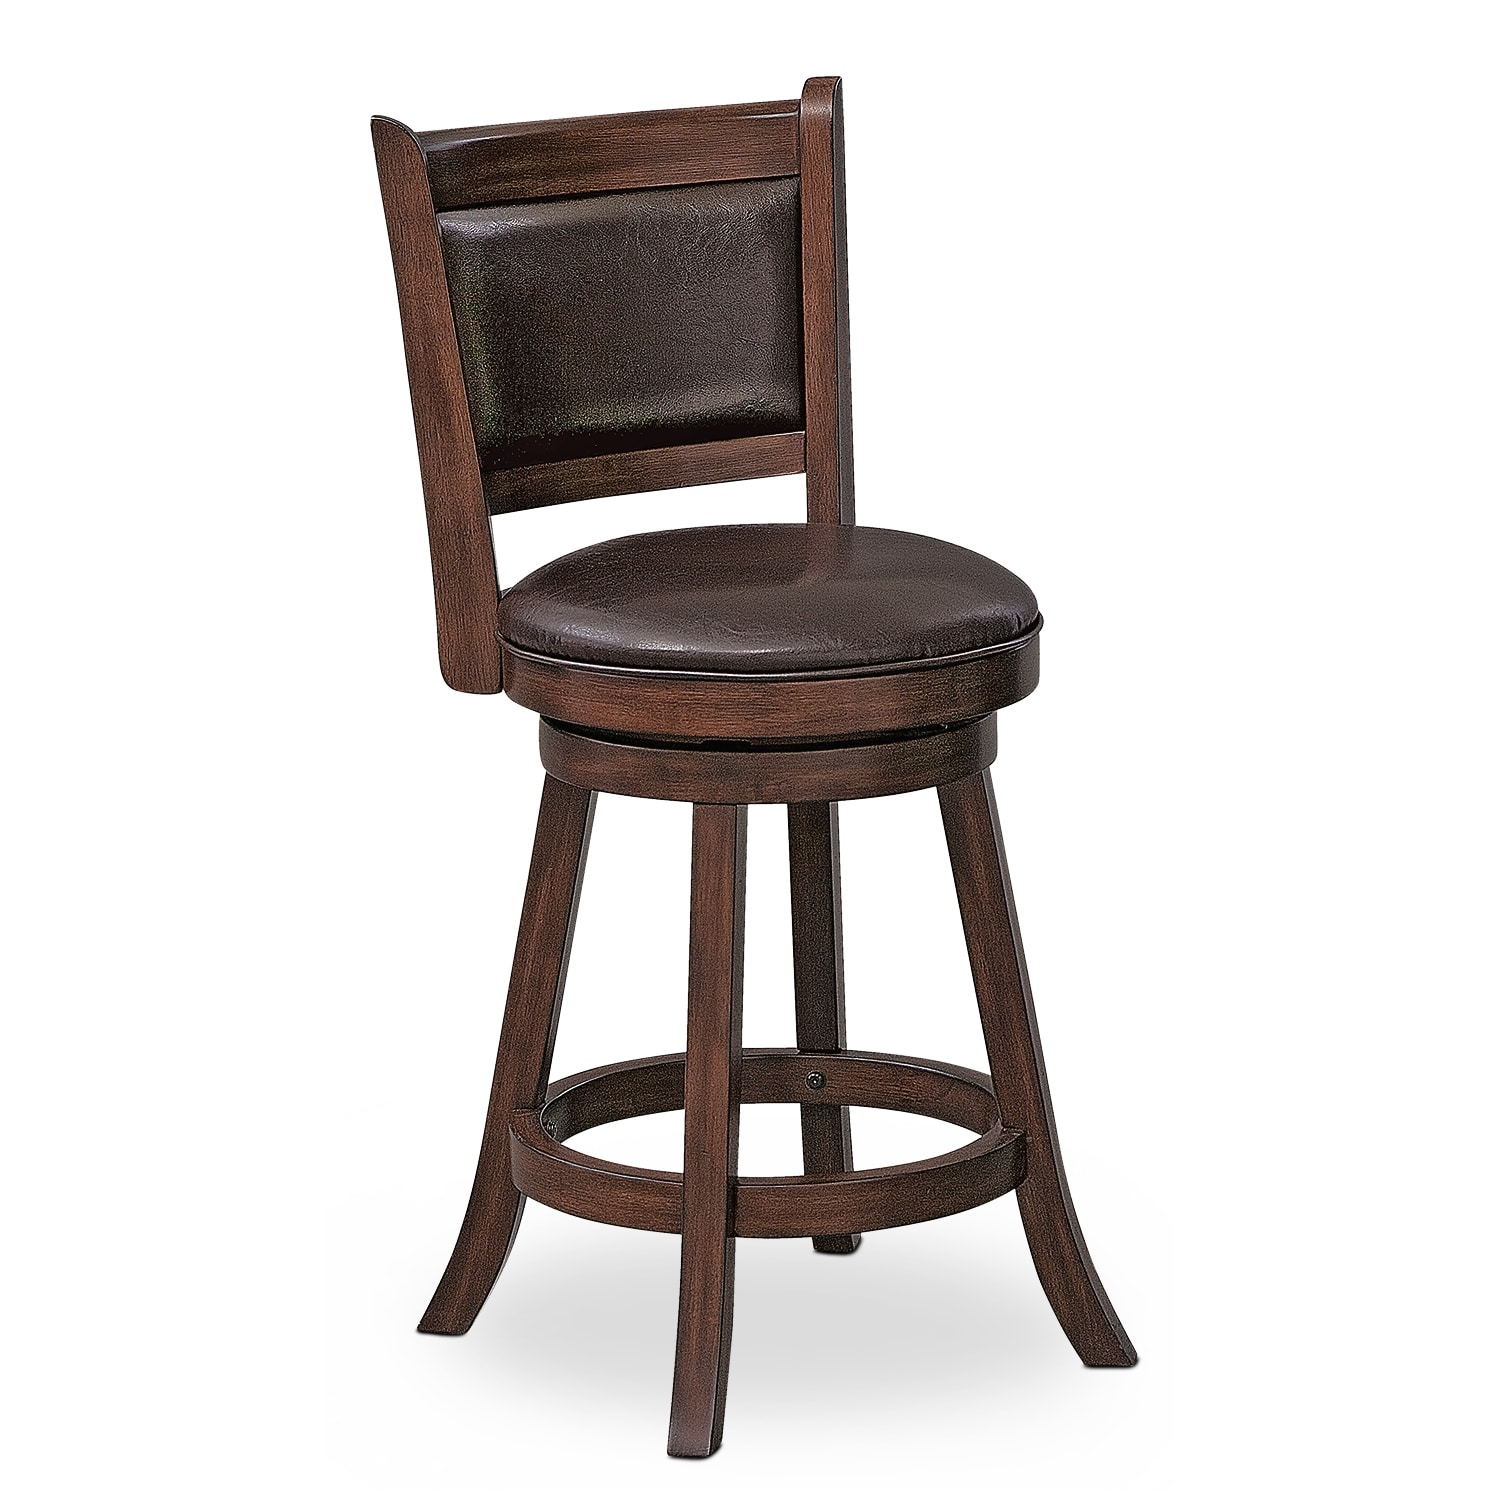 [Everly Counter-Height Stool]